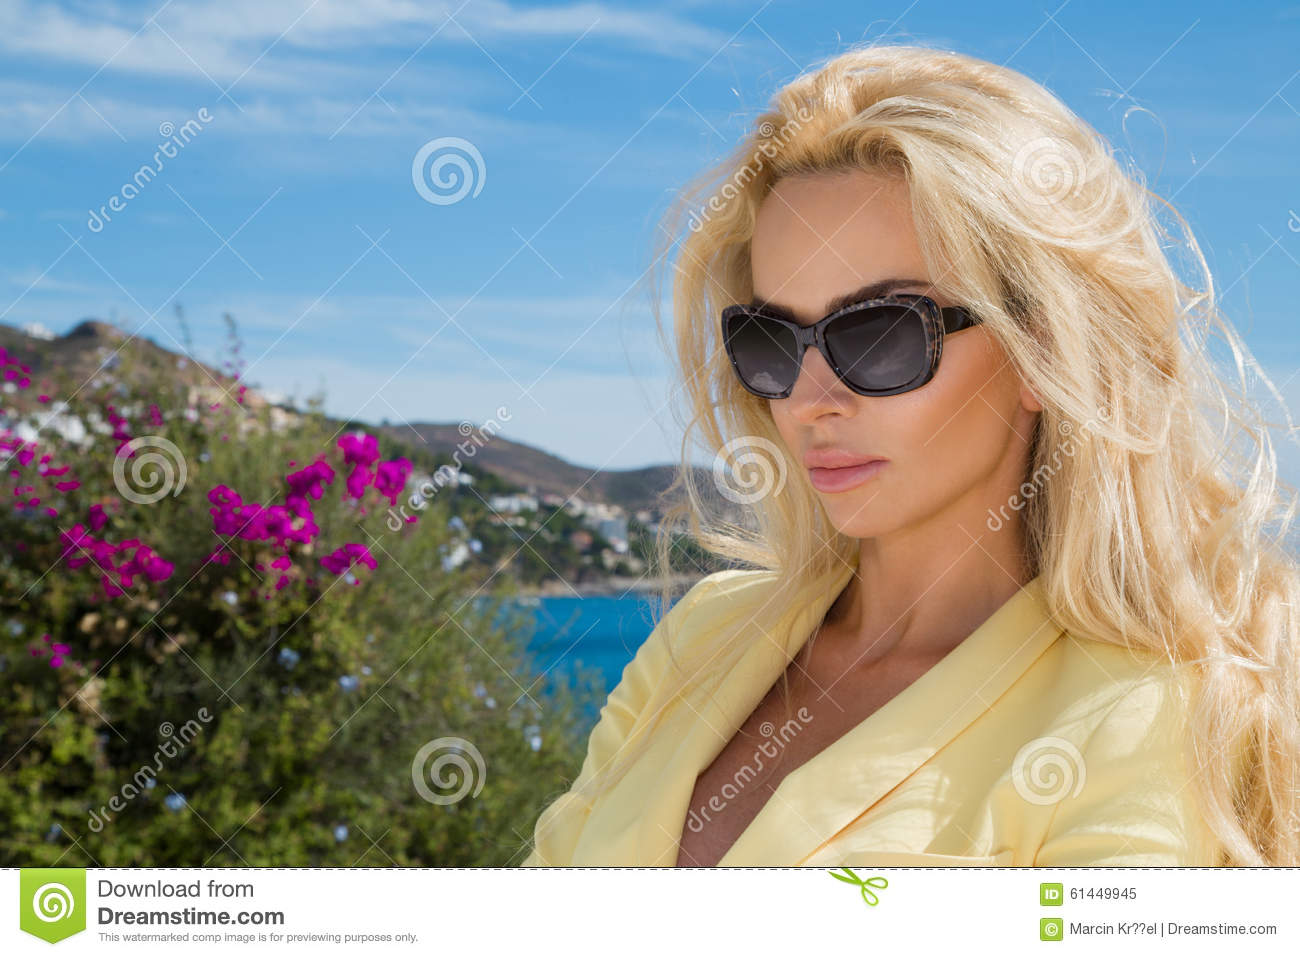 Beautiful blond hair woman young girl model in sunglasses in yellow dress, elegant jacket